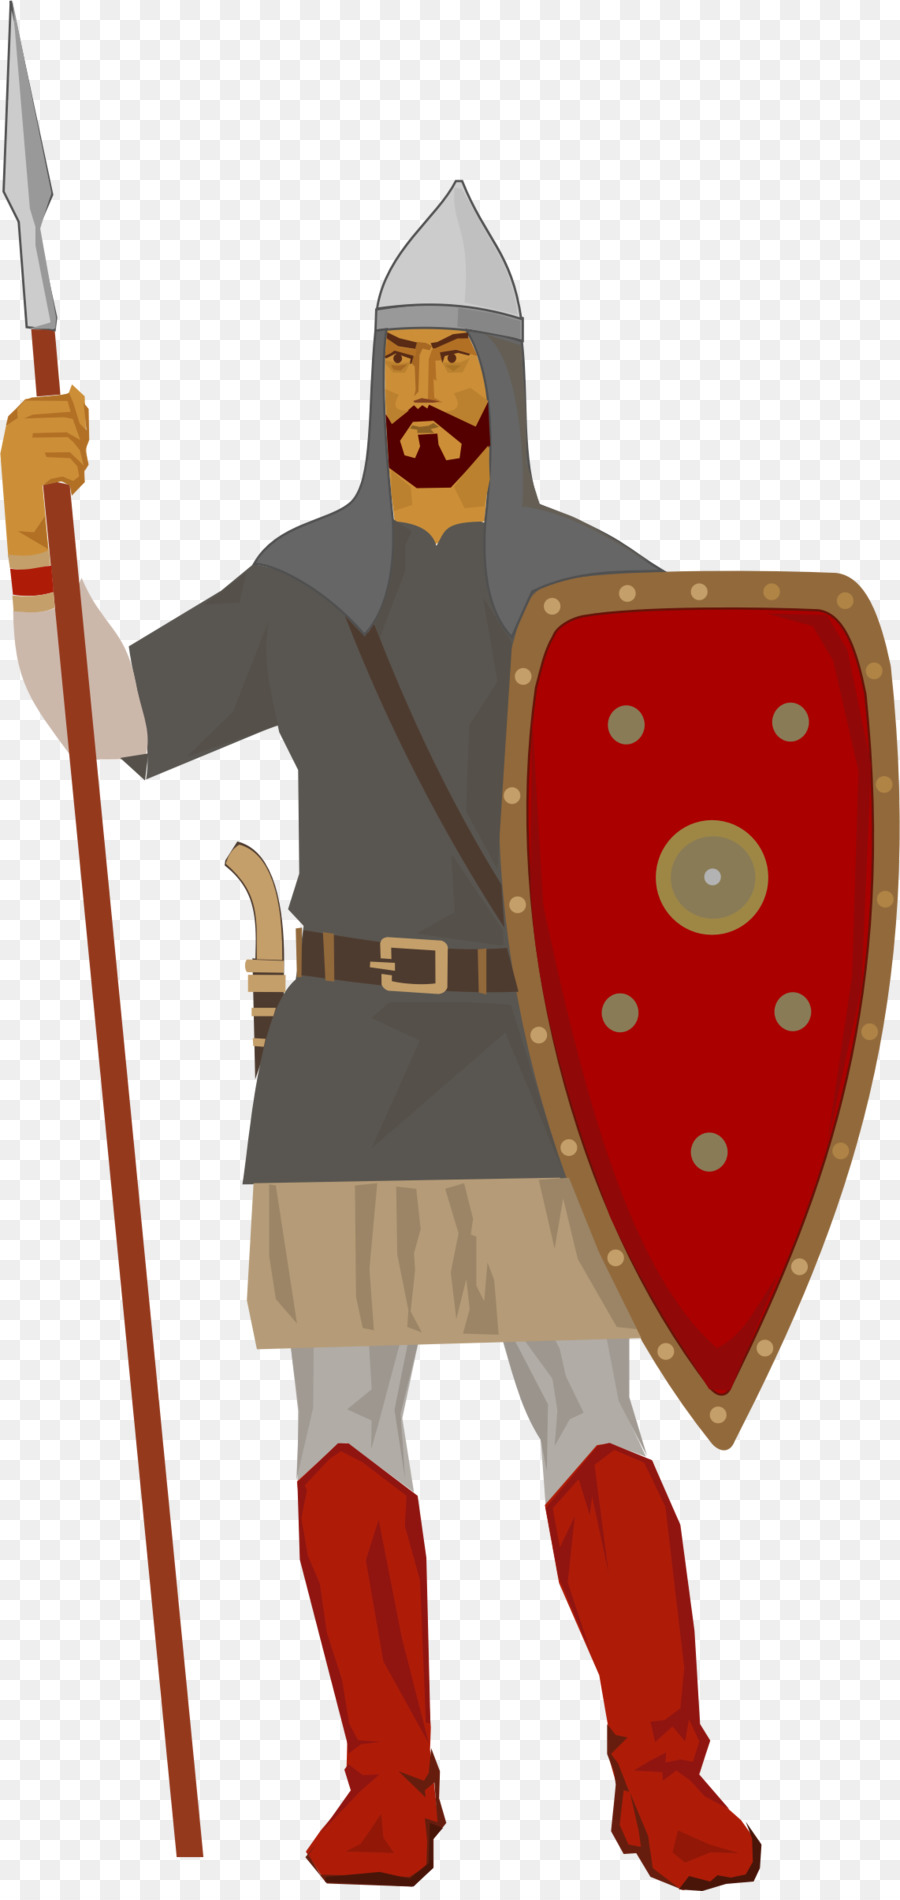 clipart Medieval army clipart. Soldier cartoon knight warrior